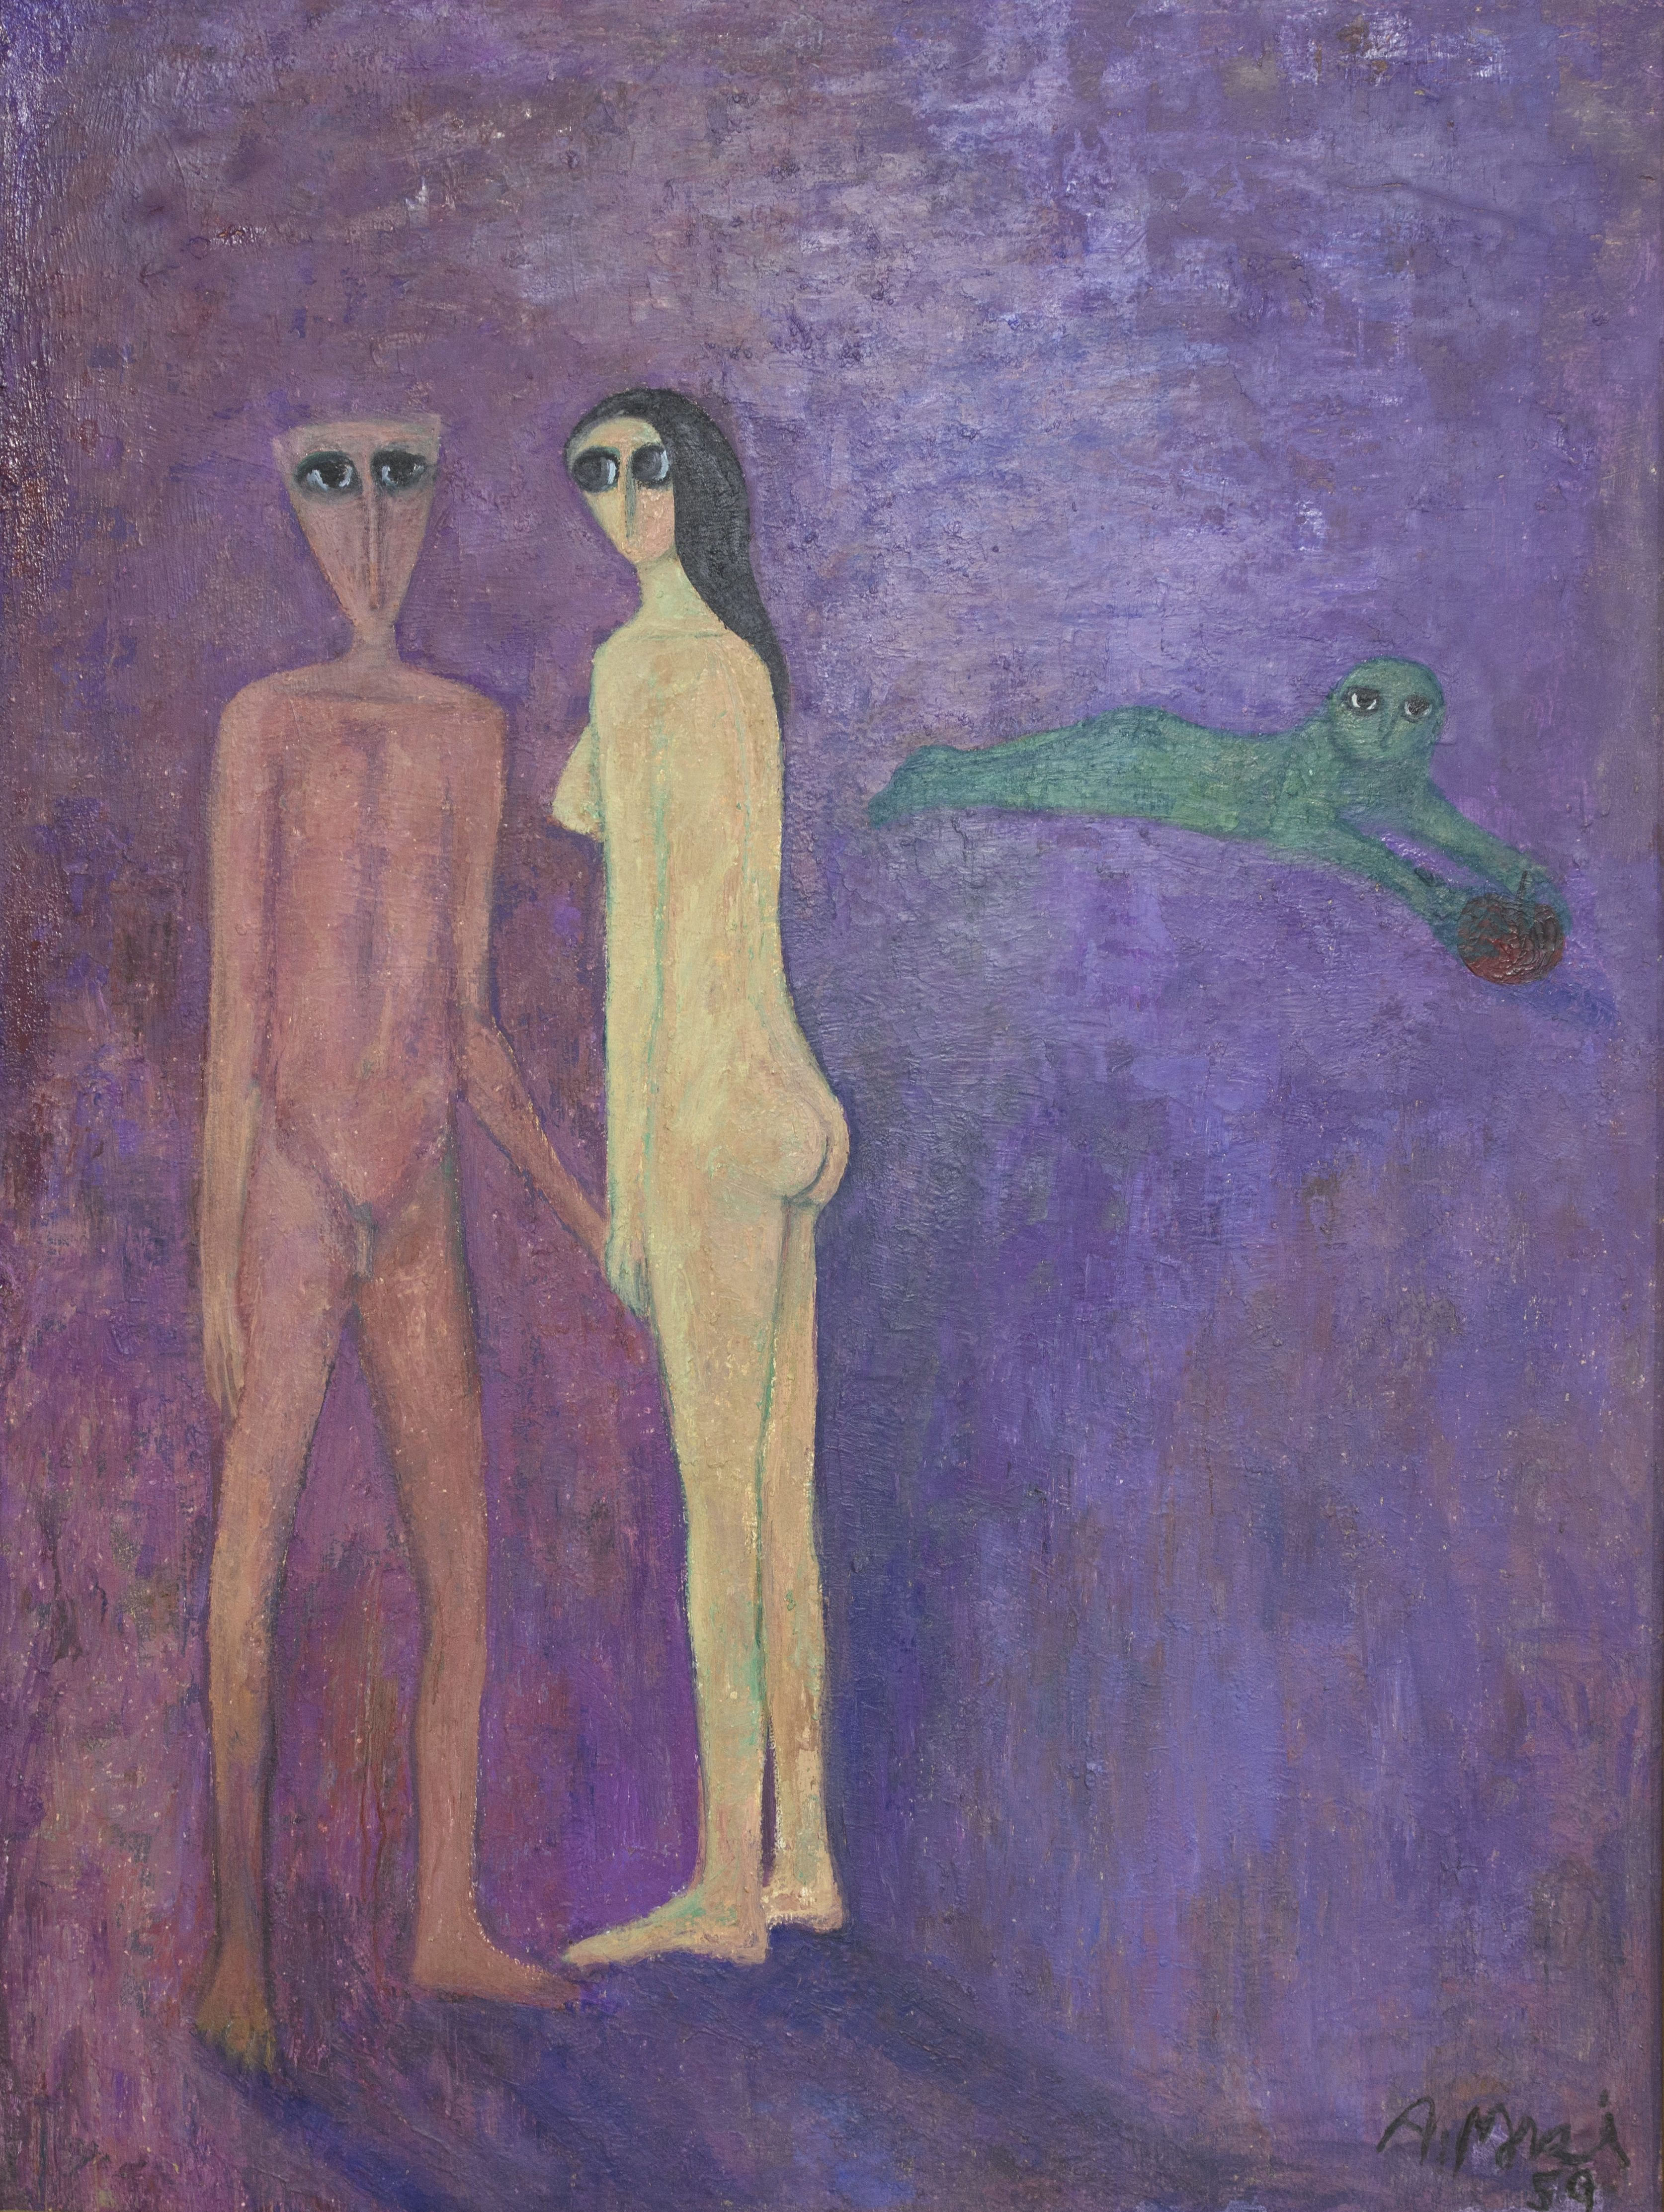 Ahmed Morsi, Adam and Eve, 1959. Oil on wood, 119 x 89 cm. Installation view. When Art Becomes Liberty: The Egyptian Surrealists, Palace of Arts, Cairo. Courtesy: Ahmed Morsi and Gypsum Gallery. Image courtesy: Sharjah Art Foundation.